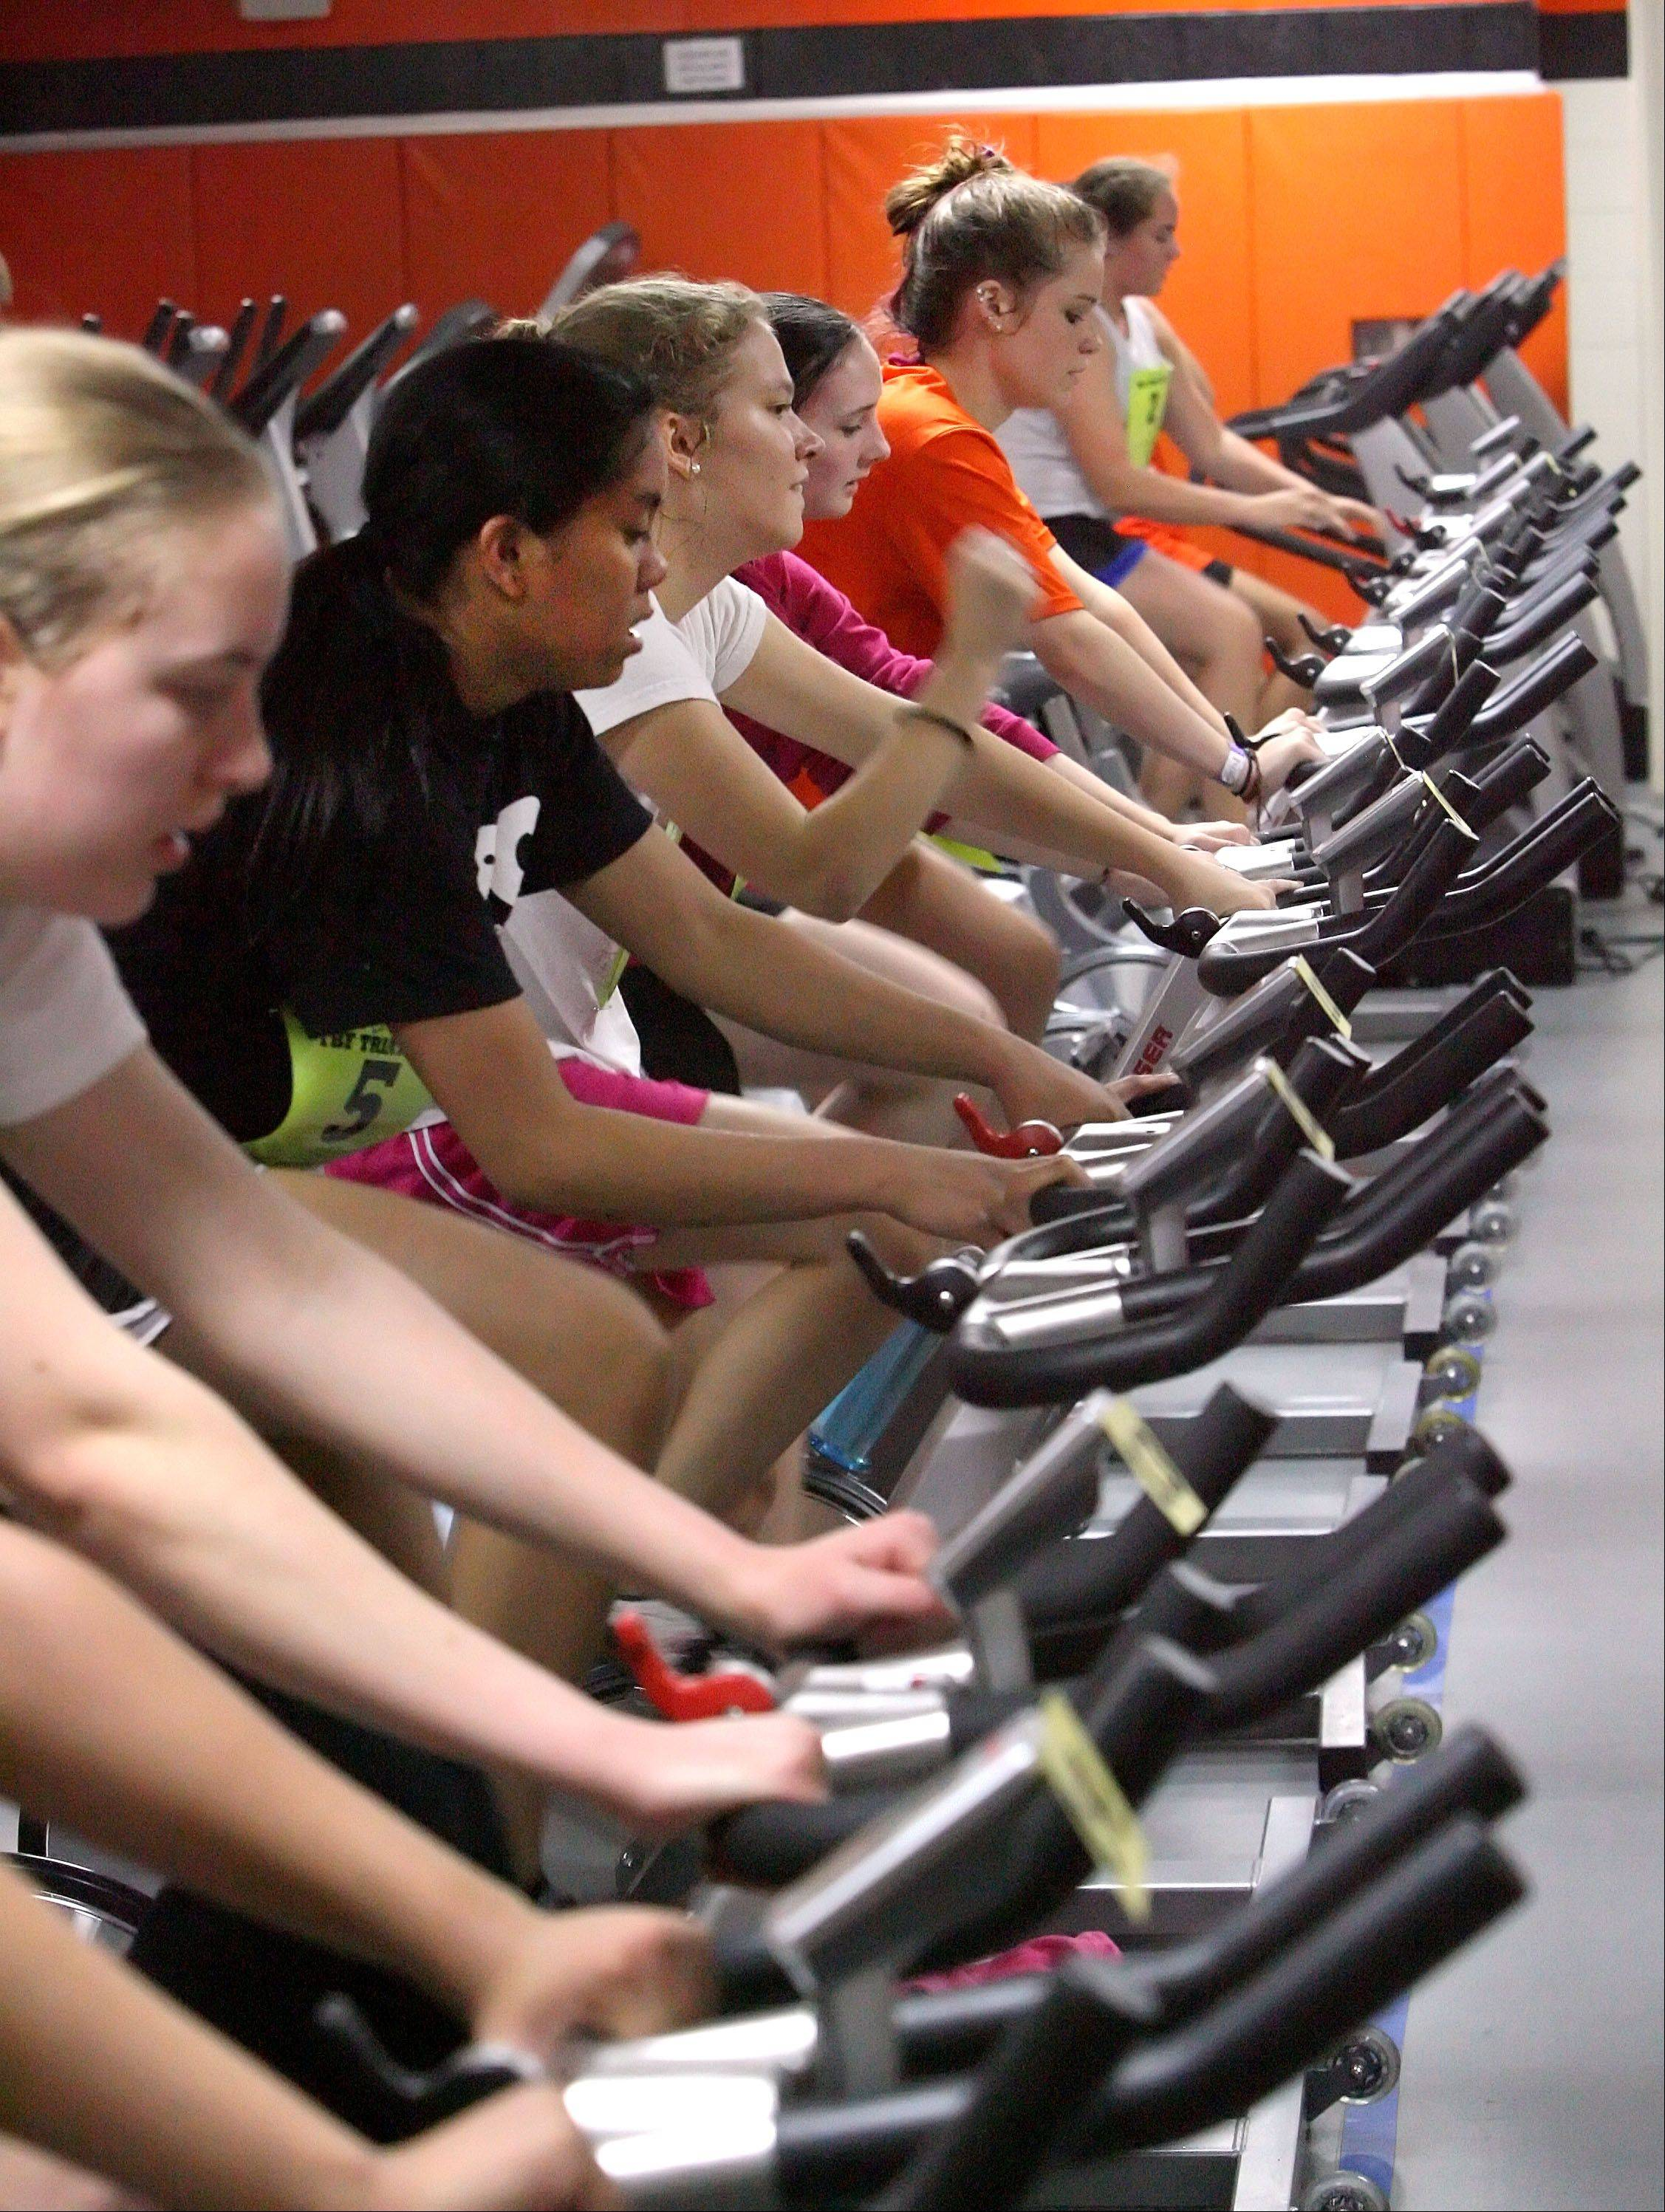 Girls compete in the 3-mile biking portion of the Total Body Fitness classes' mini-triathlon.